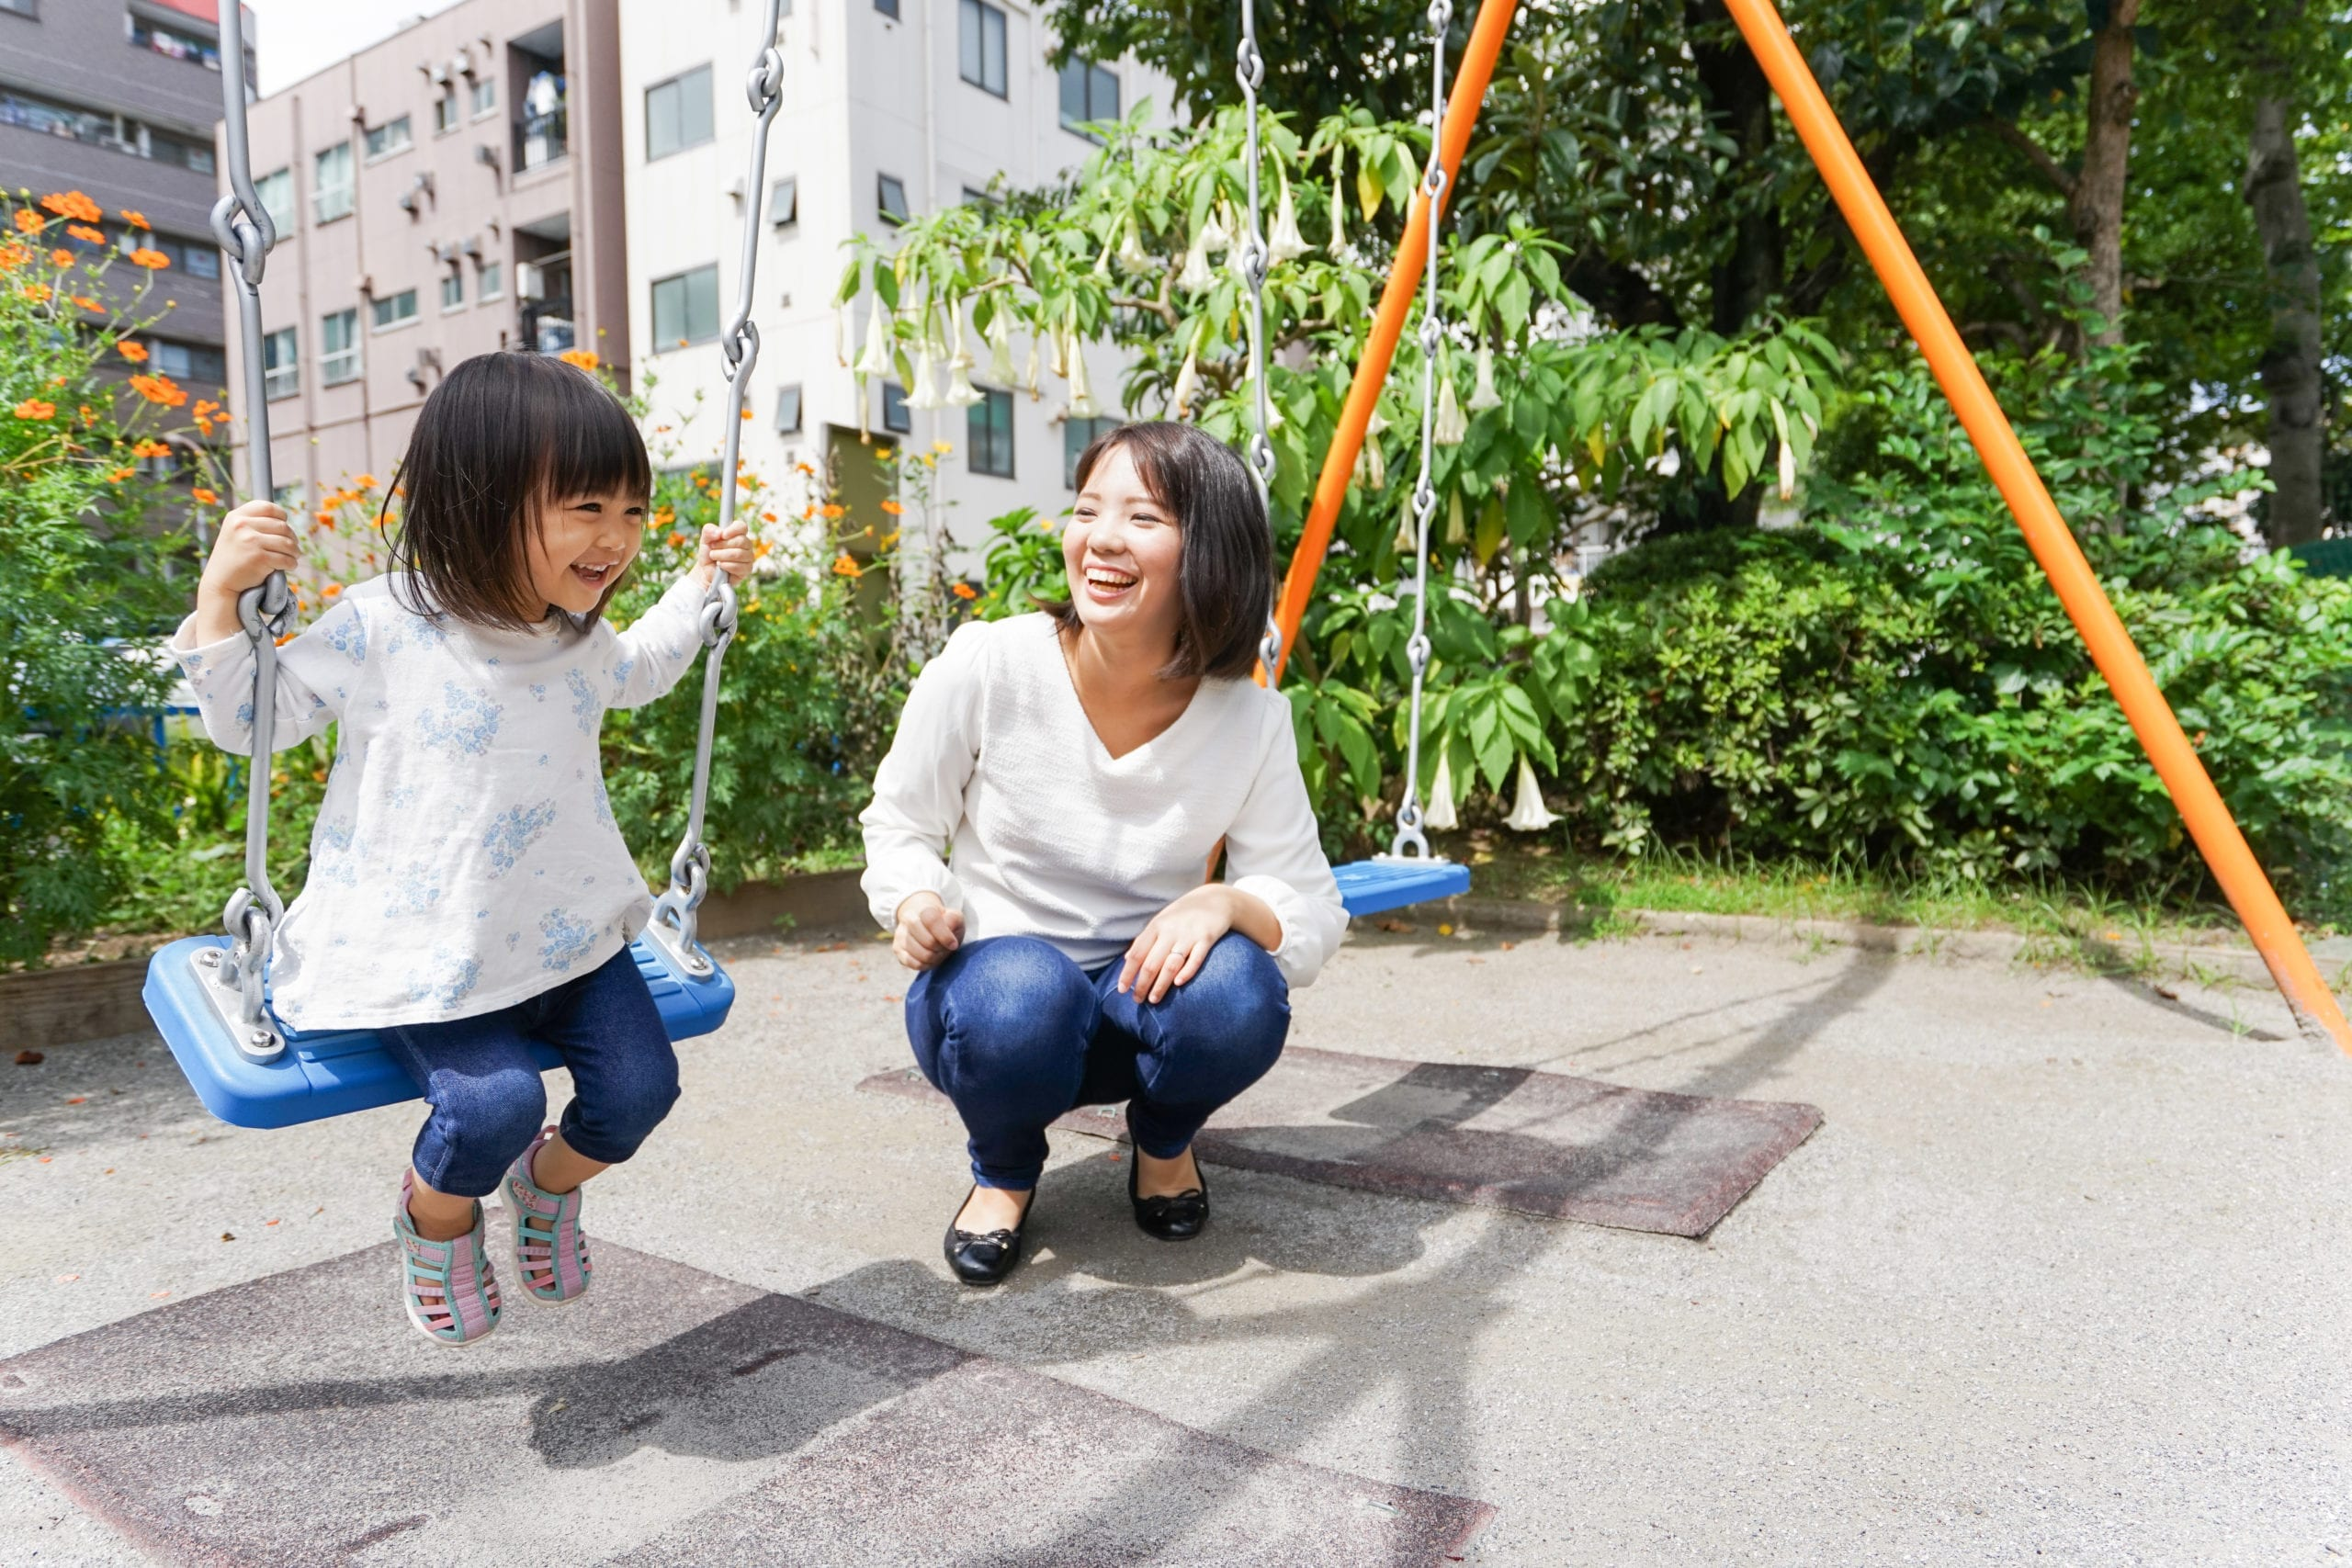 child playing outside on swing with mom